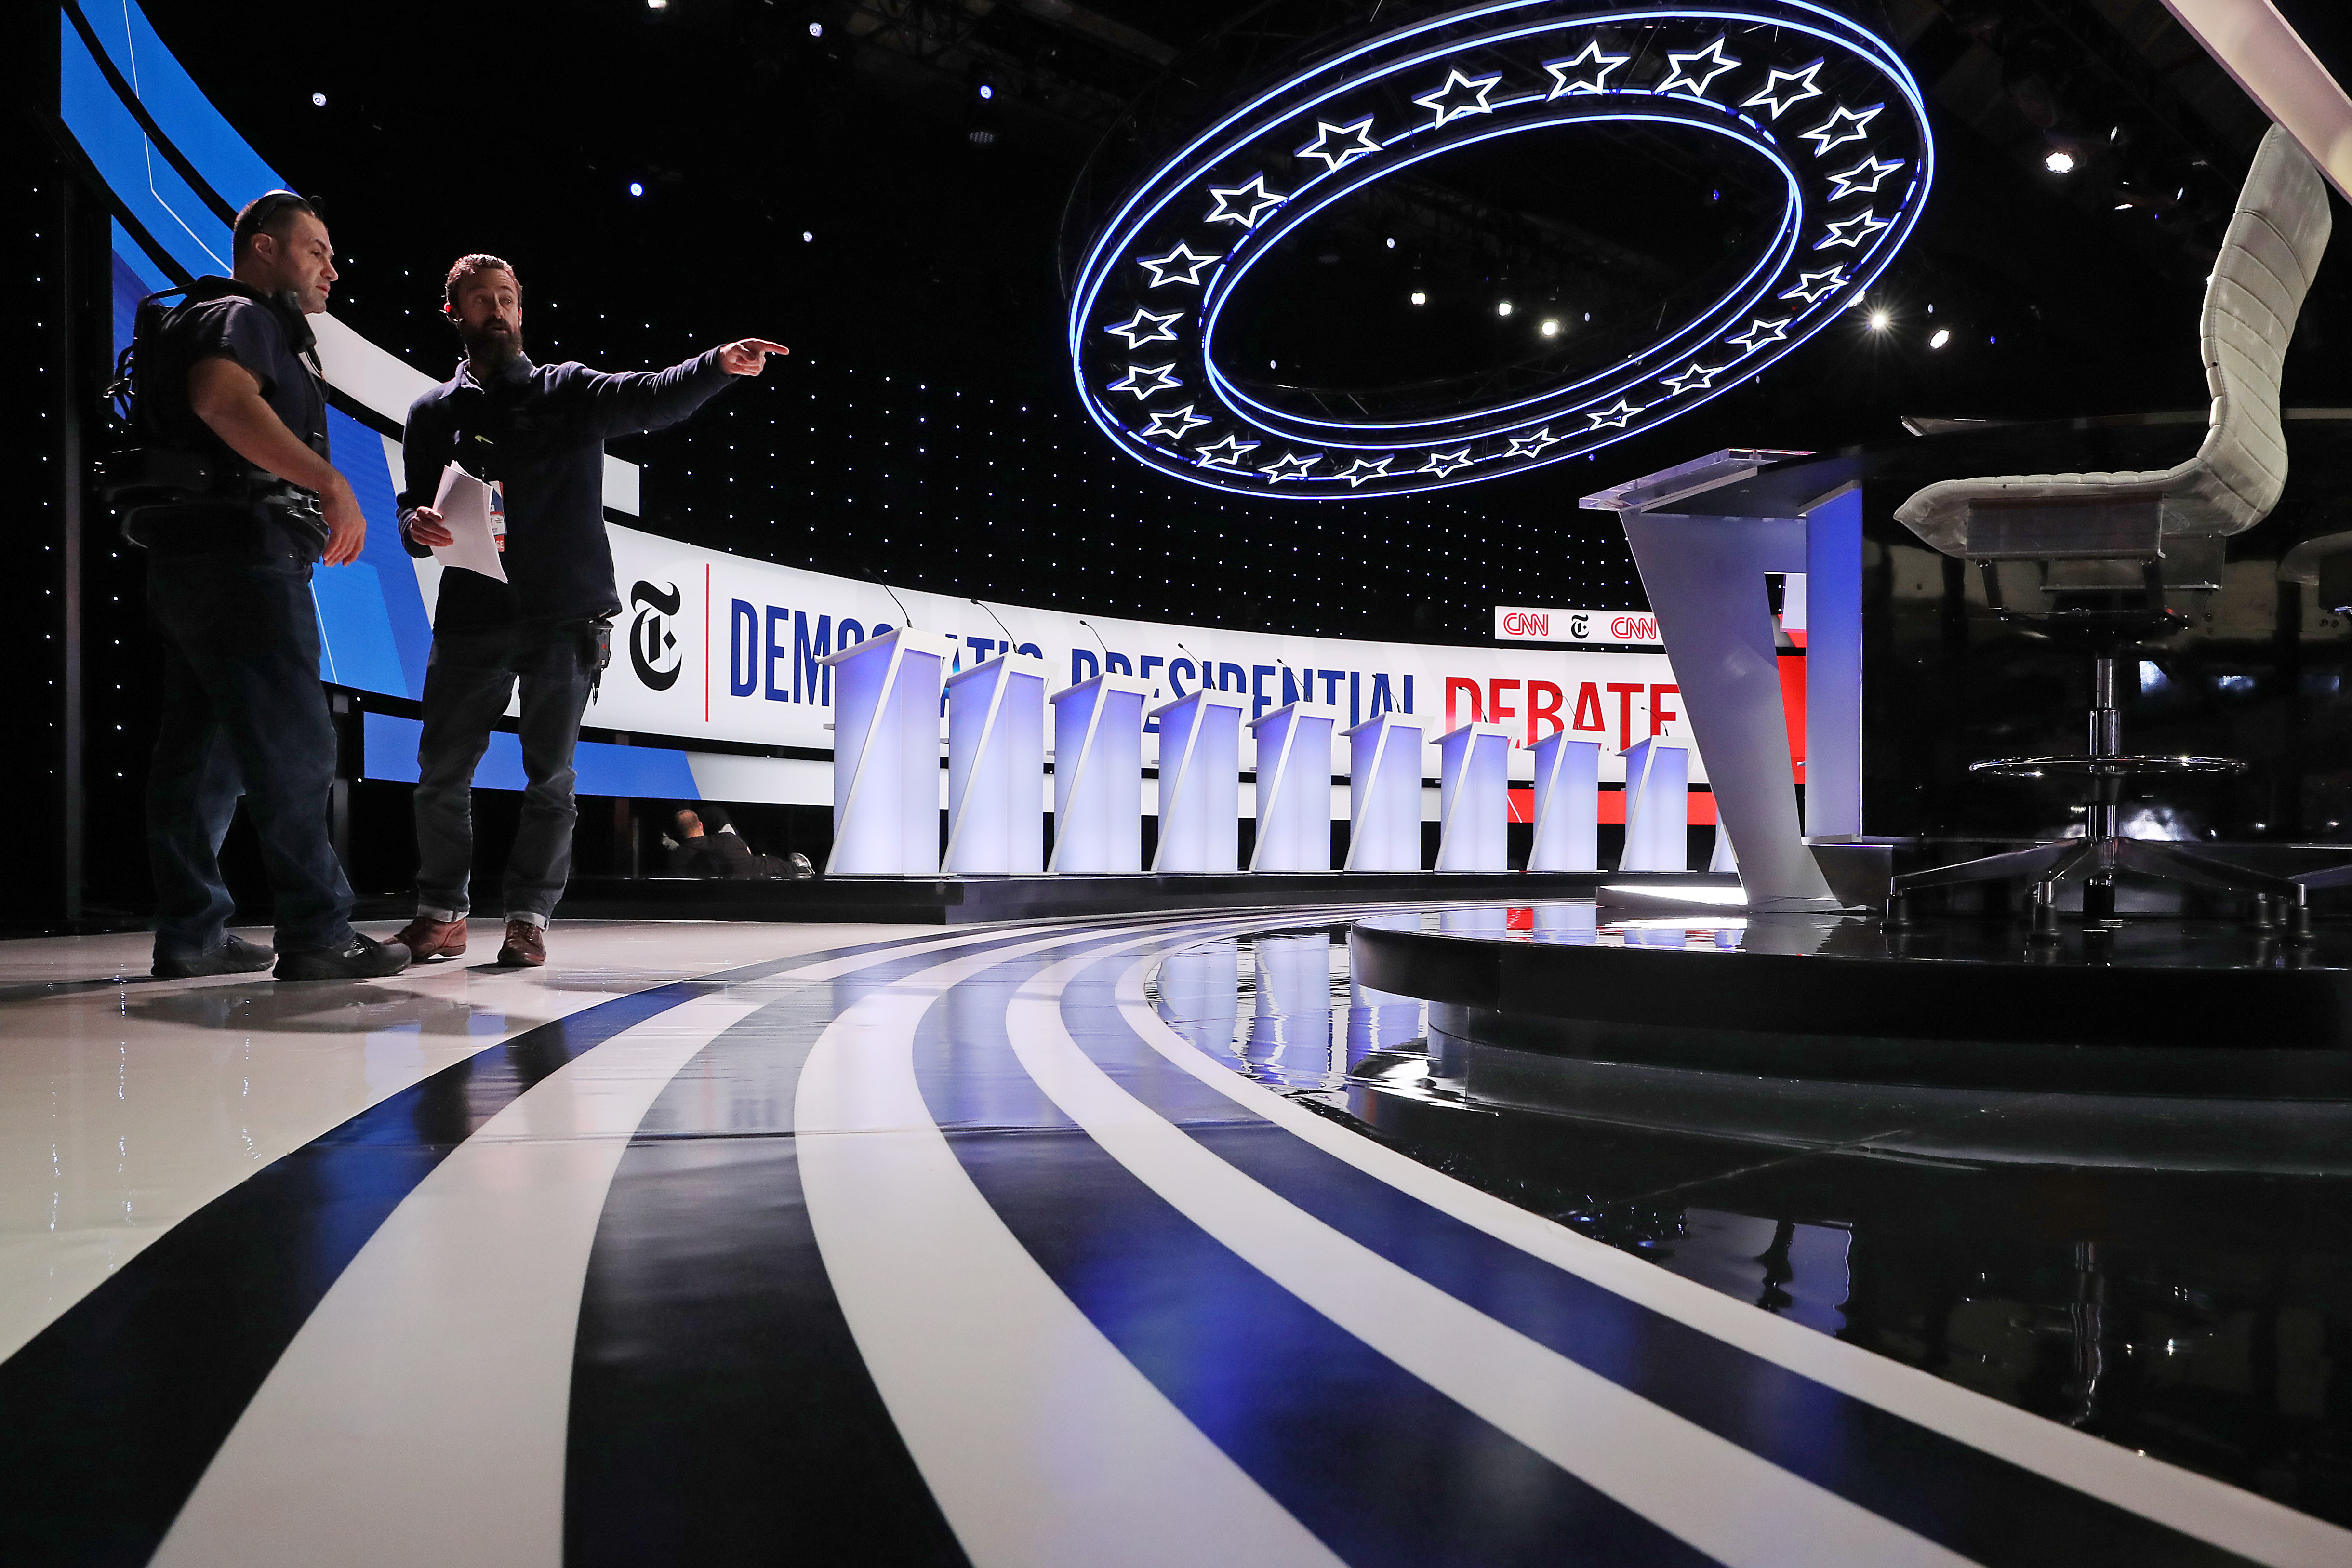 The stage is prepared ahead of Democratic presidential debate inside the Clements Recreation Center at Otterbein University on Oct. 15, 2019 in Westerville, Ohio.